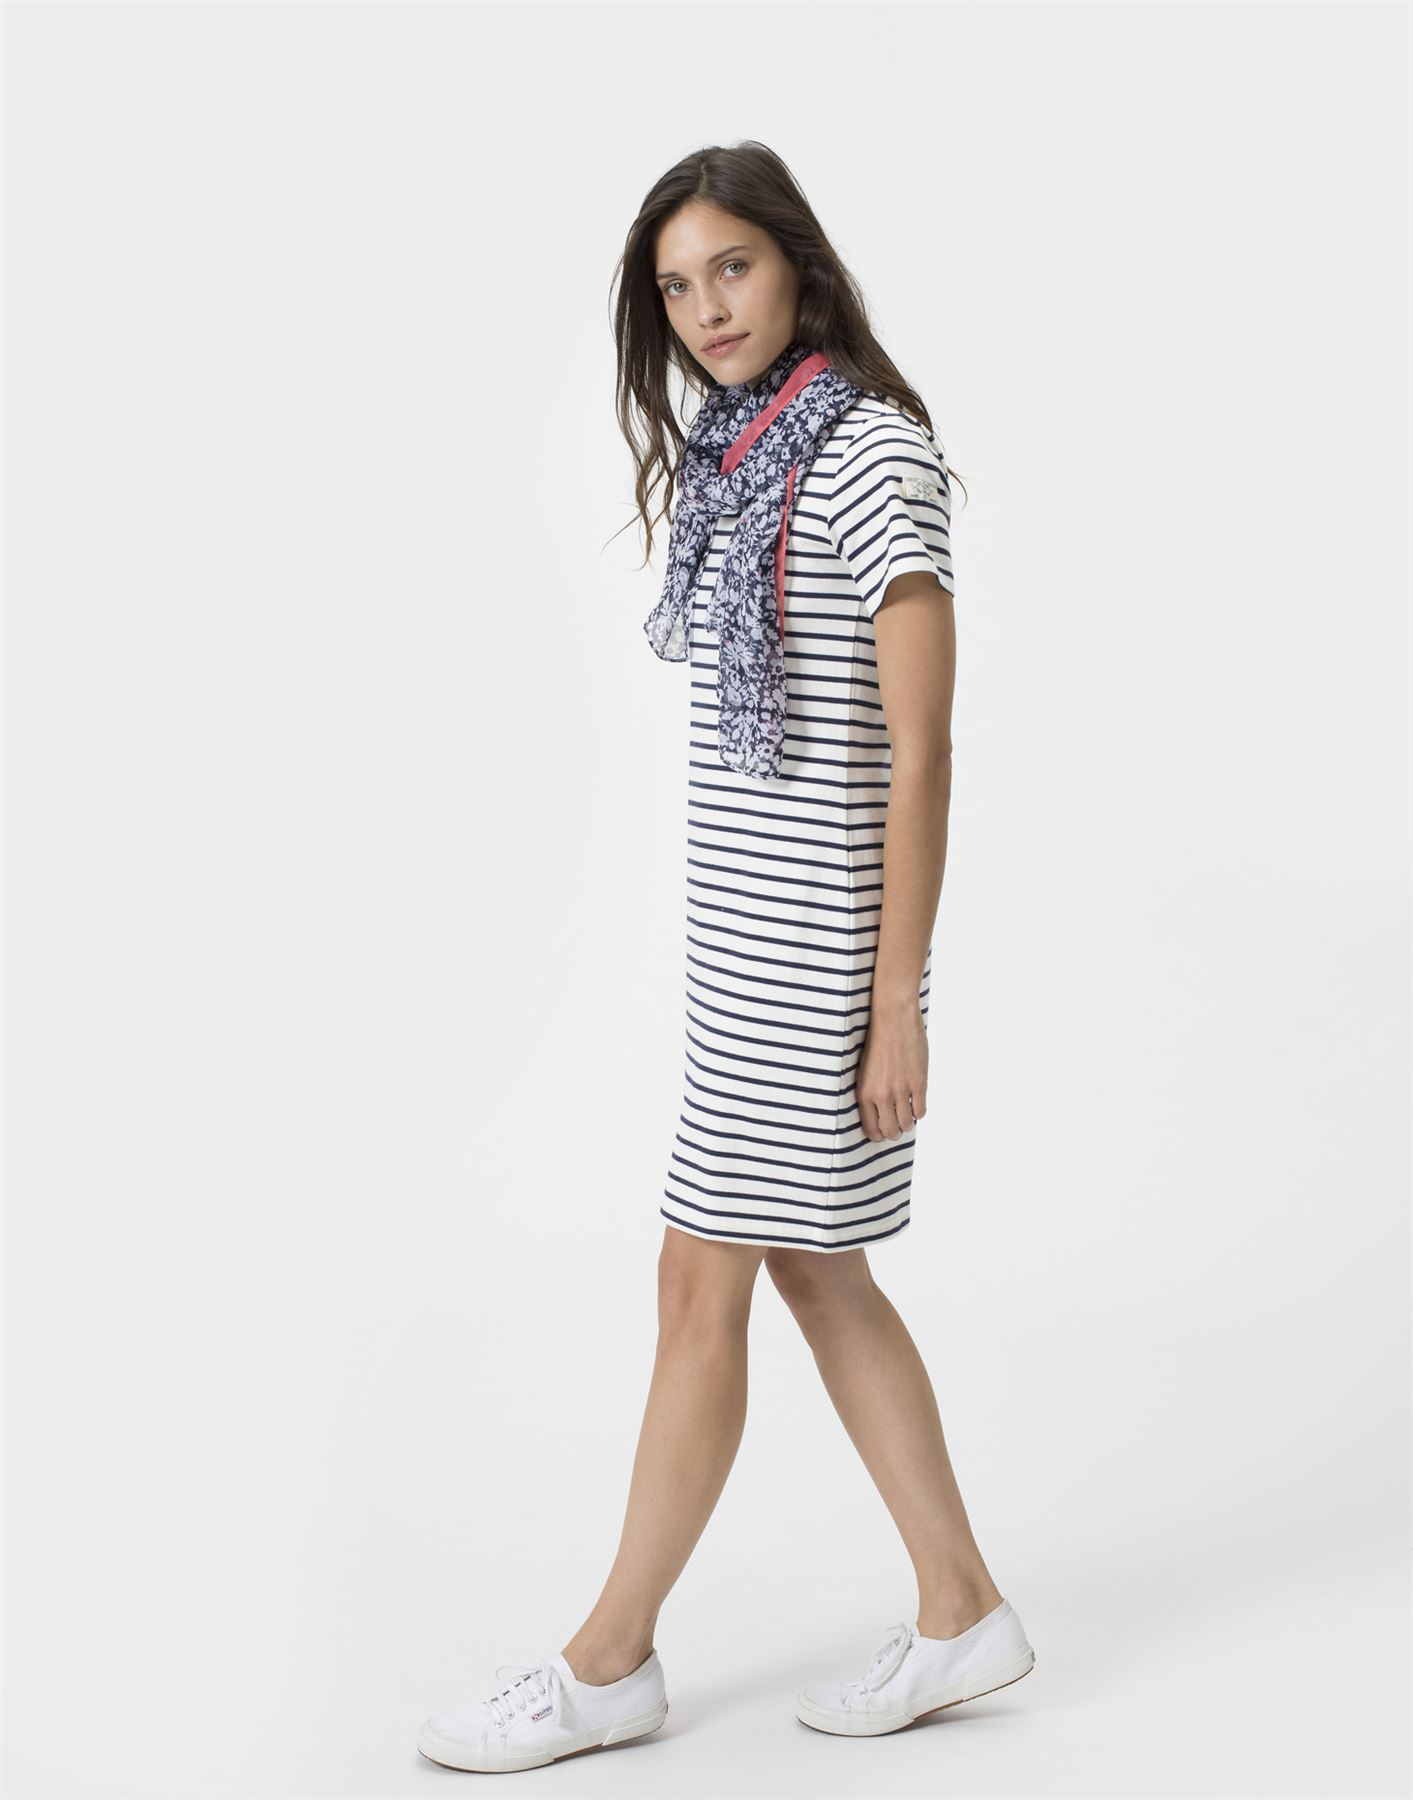 Joules riviera jersey t shirt dress ebay for Joules riviera jersey t shirt dress